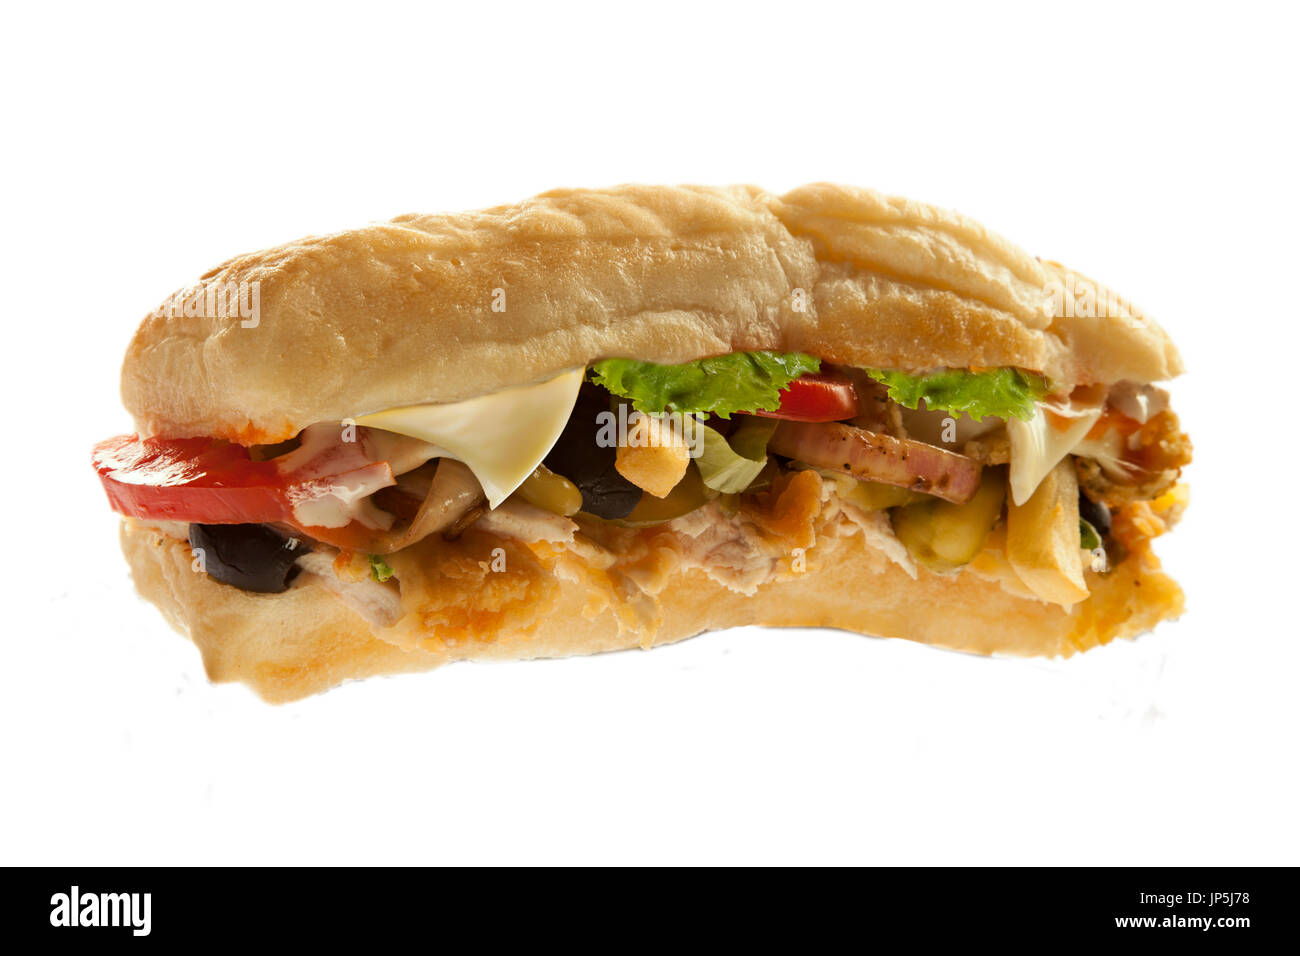 Mighty sub hoagie sandwich with fries meat and veggies - Stock Image